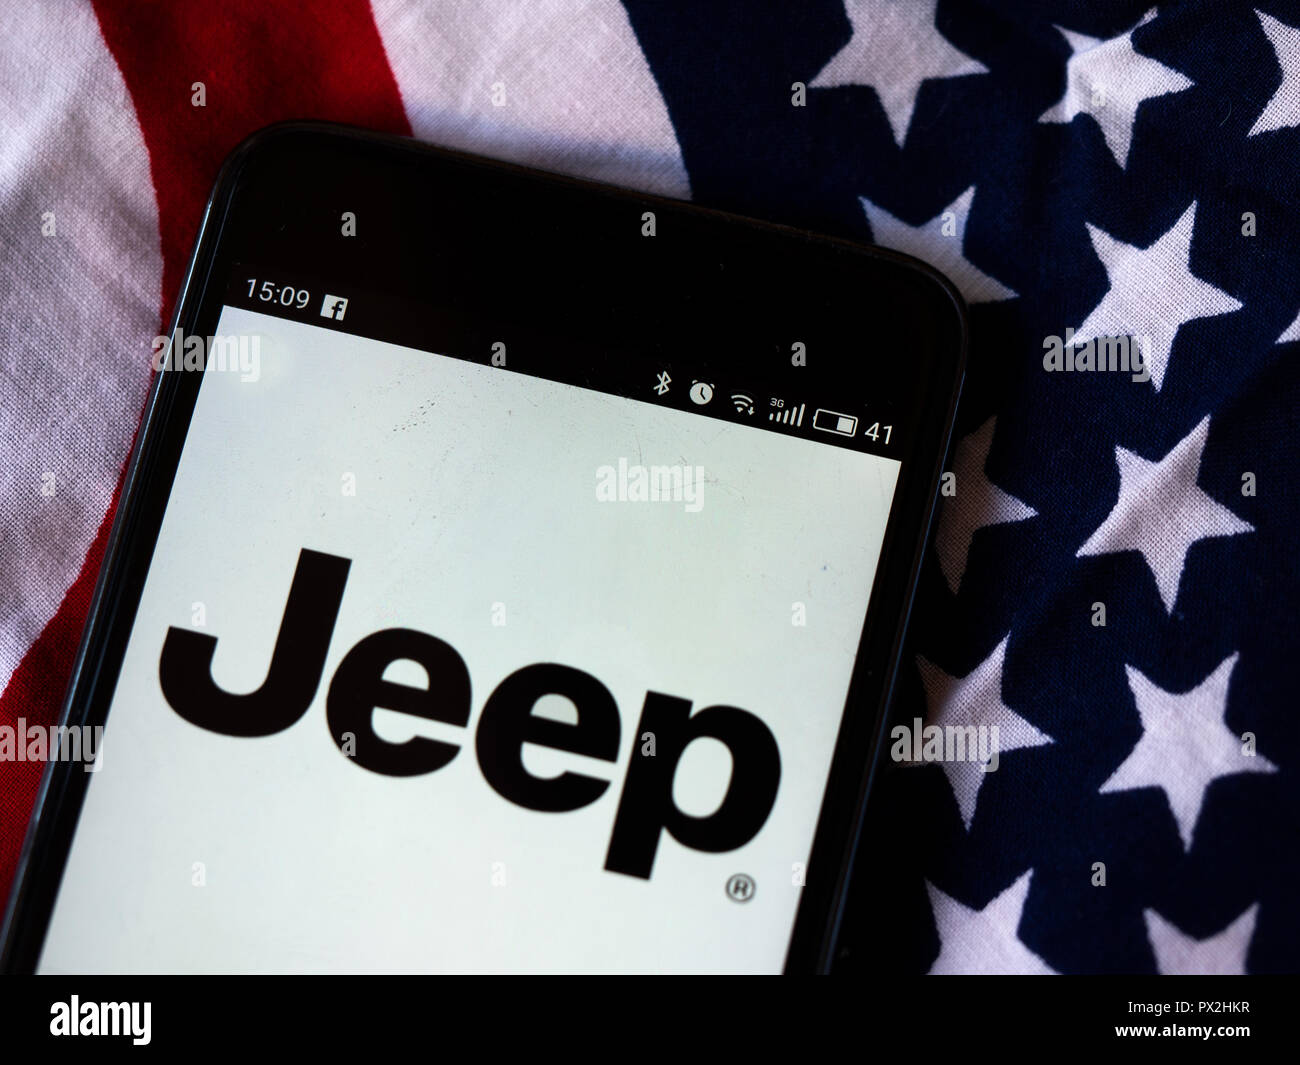 Jeep  logo seen displayed on smart phone/ Jeep is a brand of American automobiles that is a division of FCA US LLC, a wholly owned subsidiary of the Italian-American corporation Fiat Chrysler Automobiles. Stock Photo